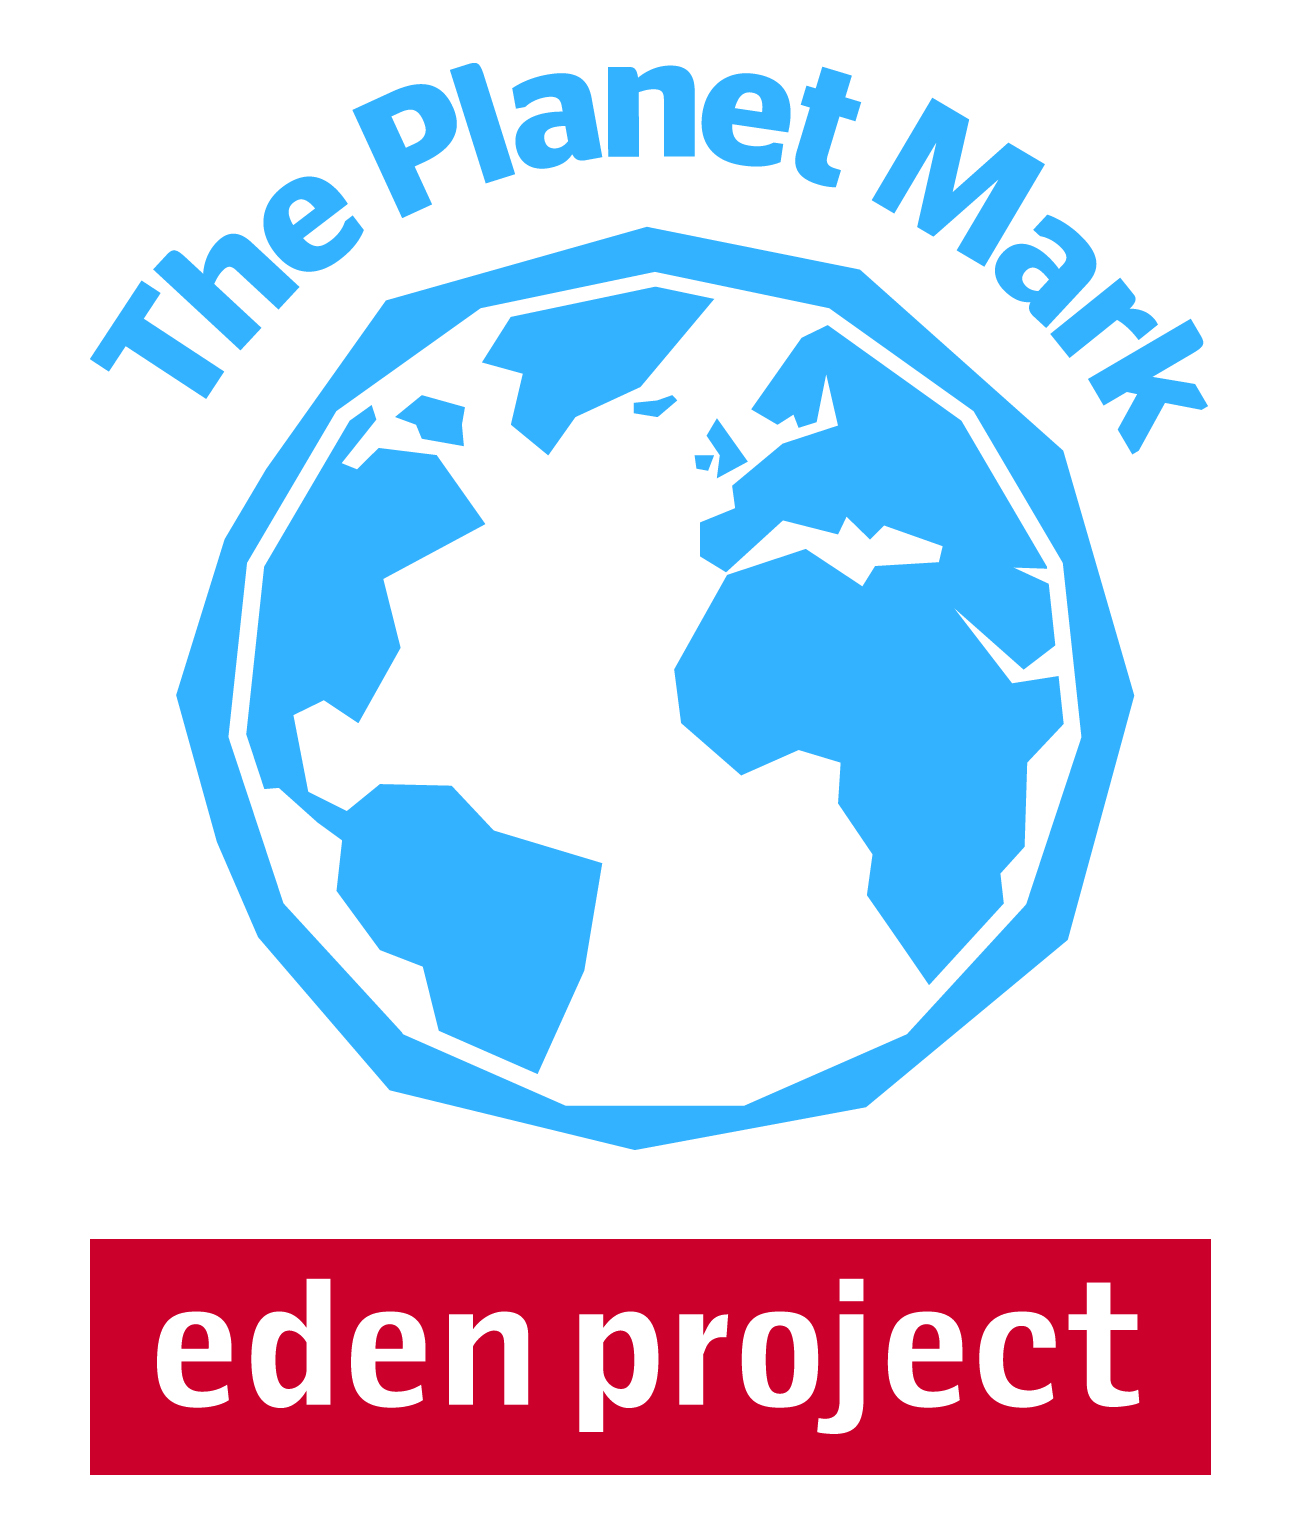 The Importance Of The Planet Mark Certification Scheme Ecoprod